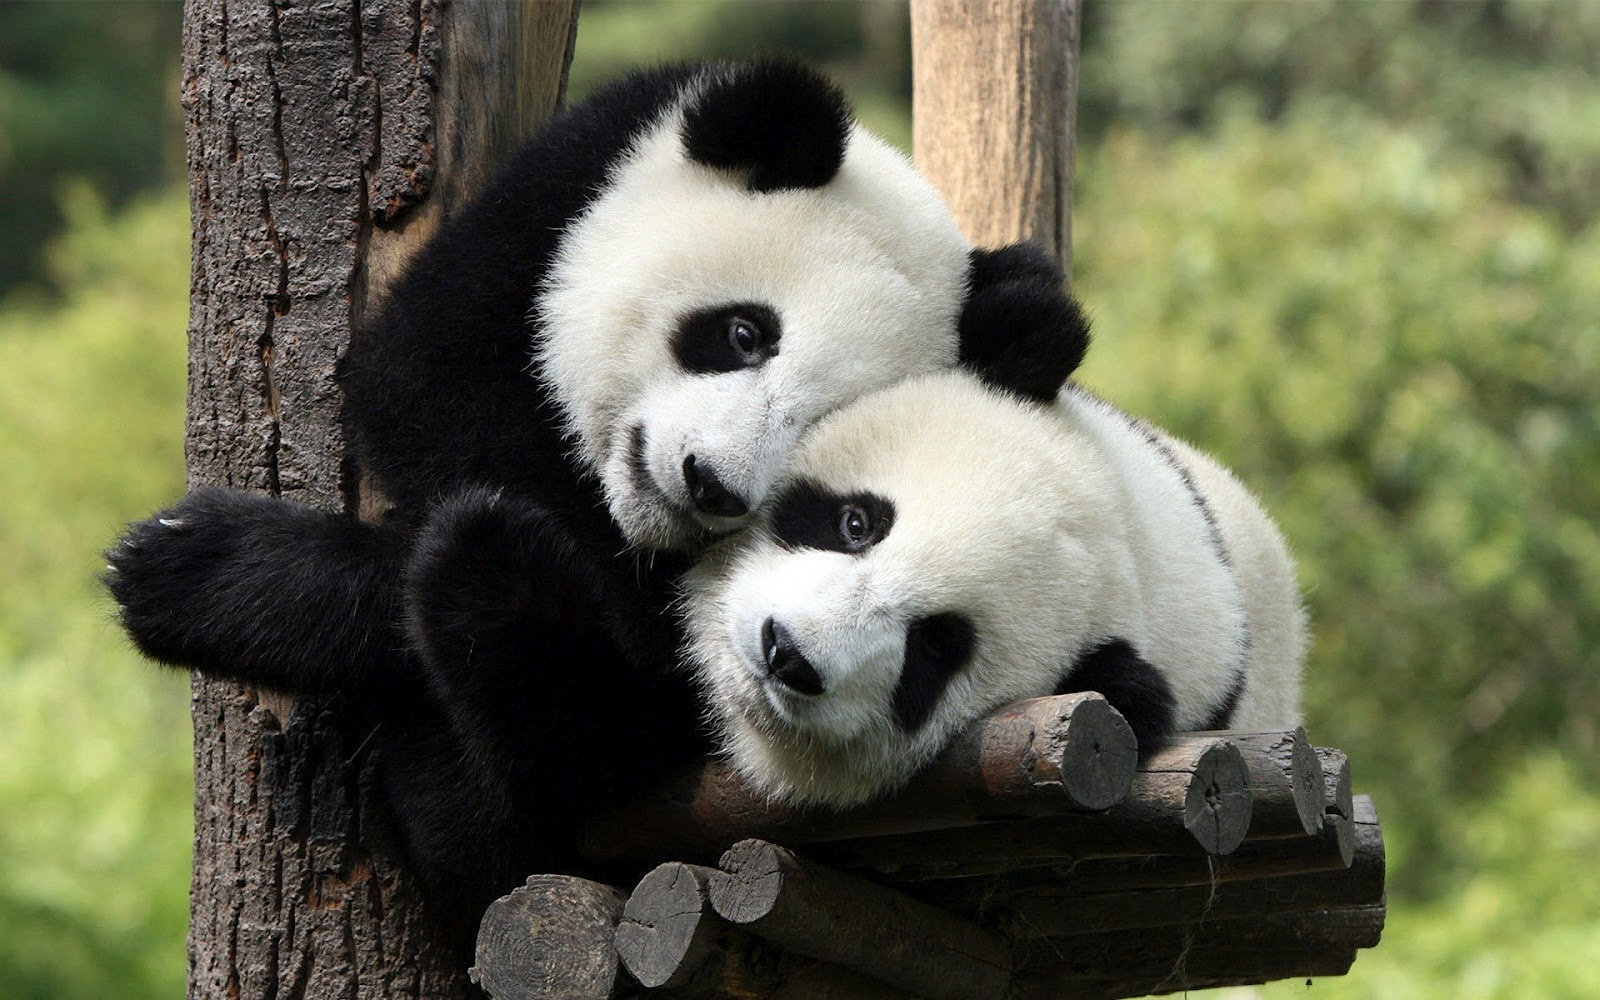 Cute Panda Hd Wallpapers Hd animal wallpaper of two 1600x1000